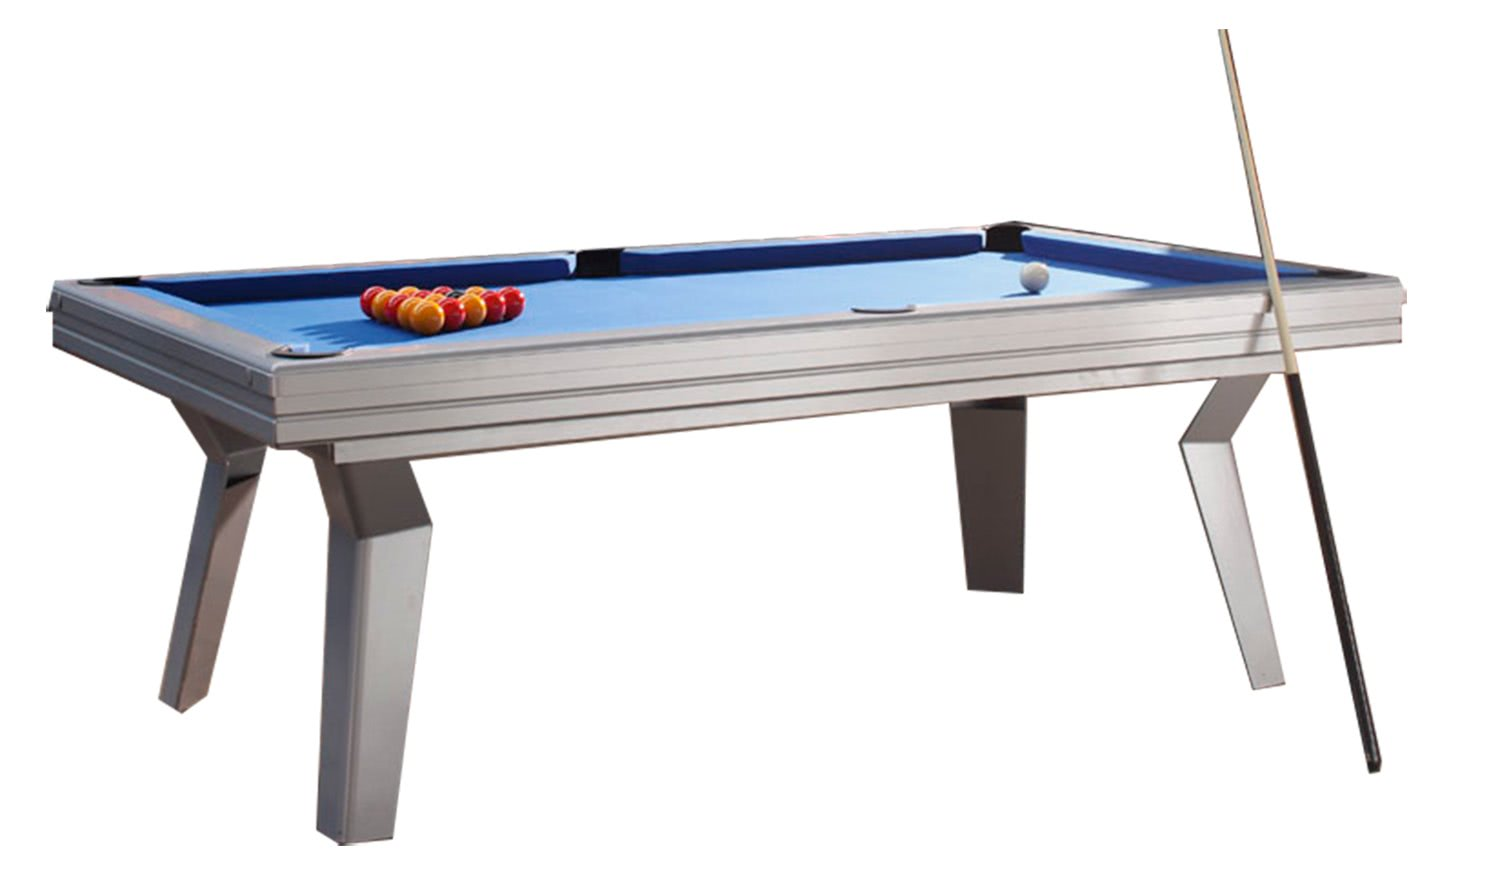 billard toulet pop pool table 6 ft 7 ft 8 ft liberty games. Black Bedroom Furniture Sets. Home Design Ideas